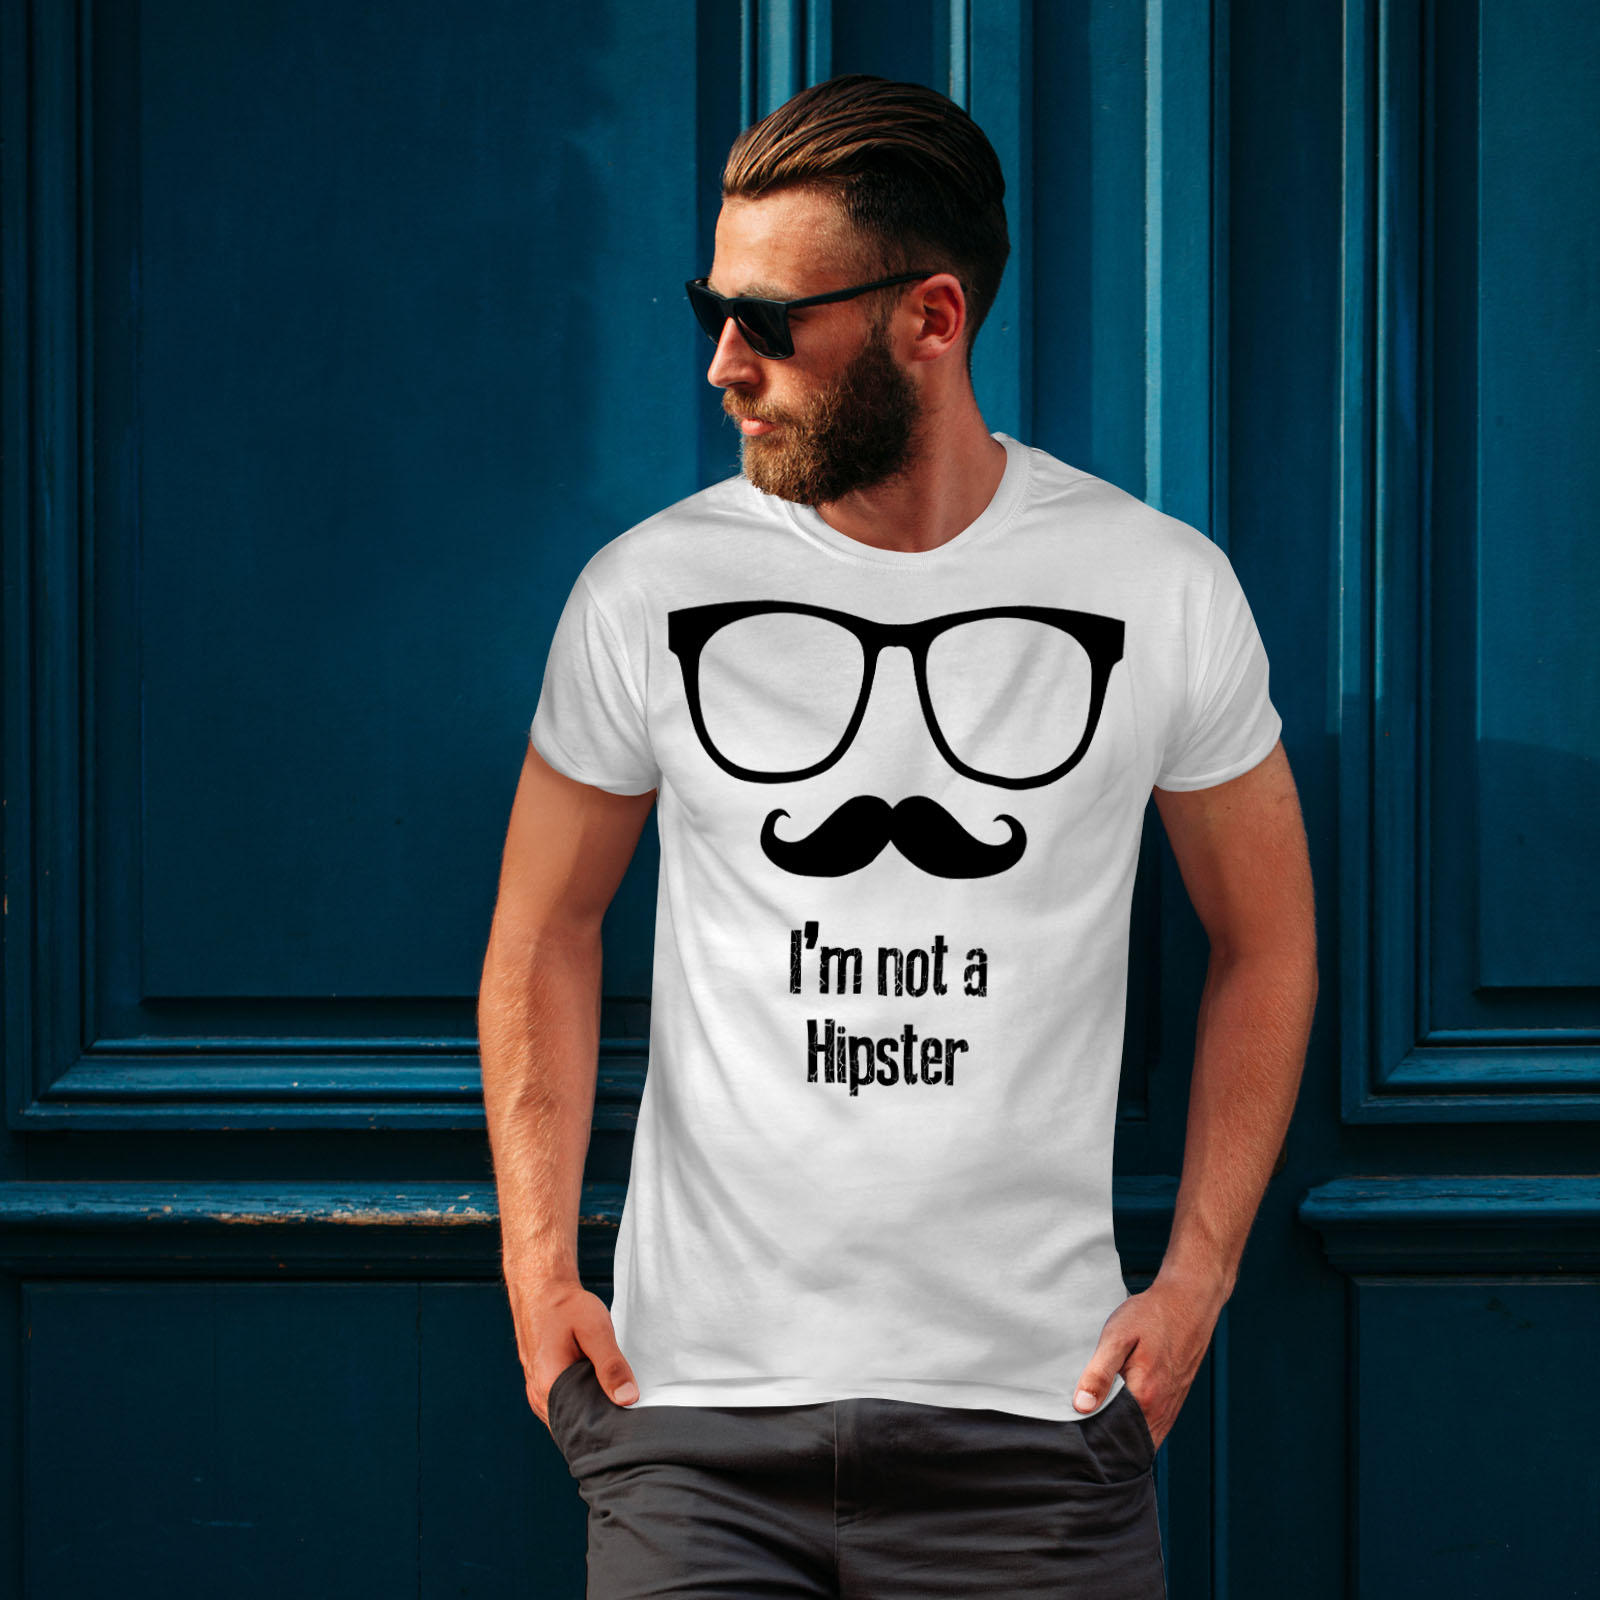 Wellcoda-Moustache-Hipster-Mens-T-shirt-Shades-Graphic-Design-Printed-Tee